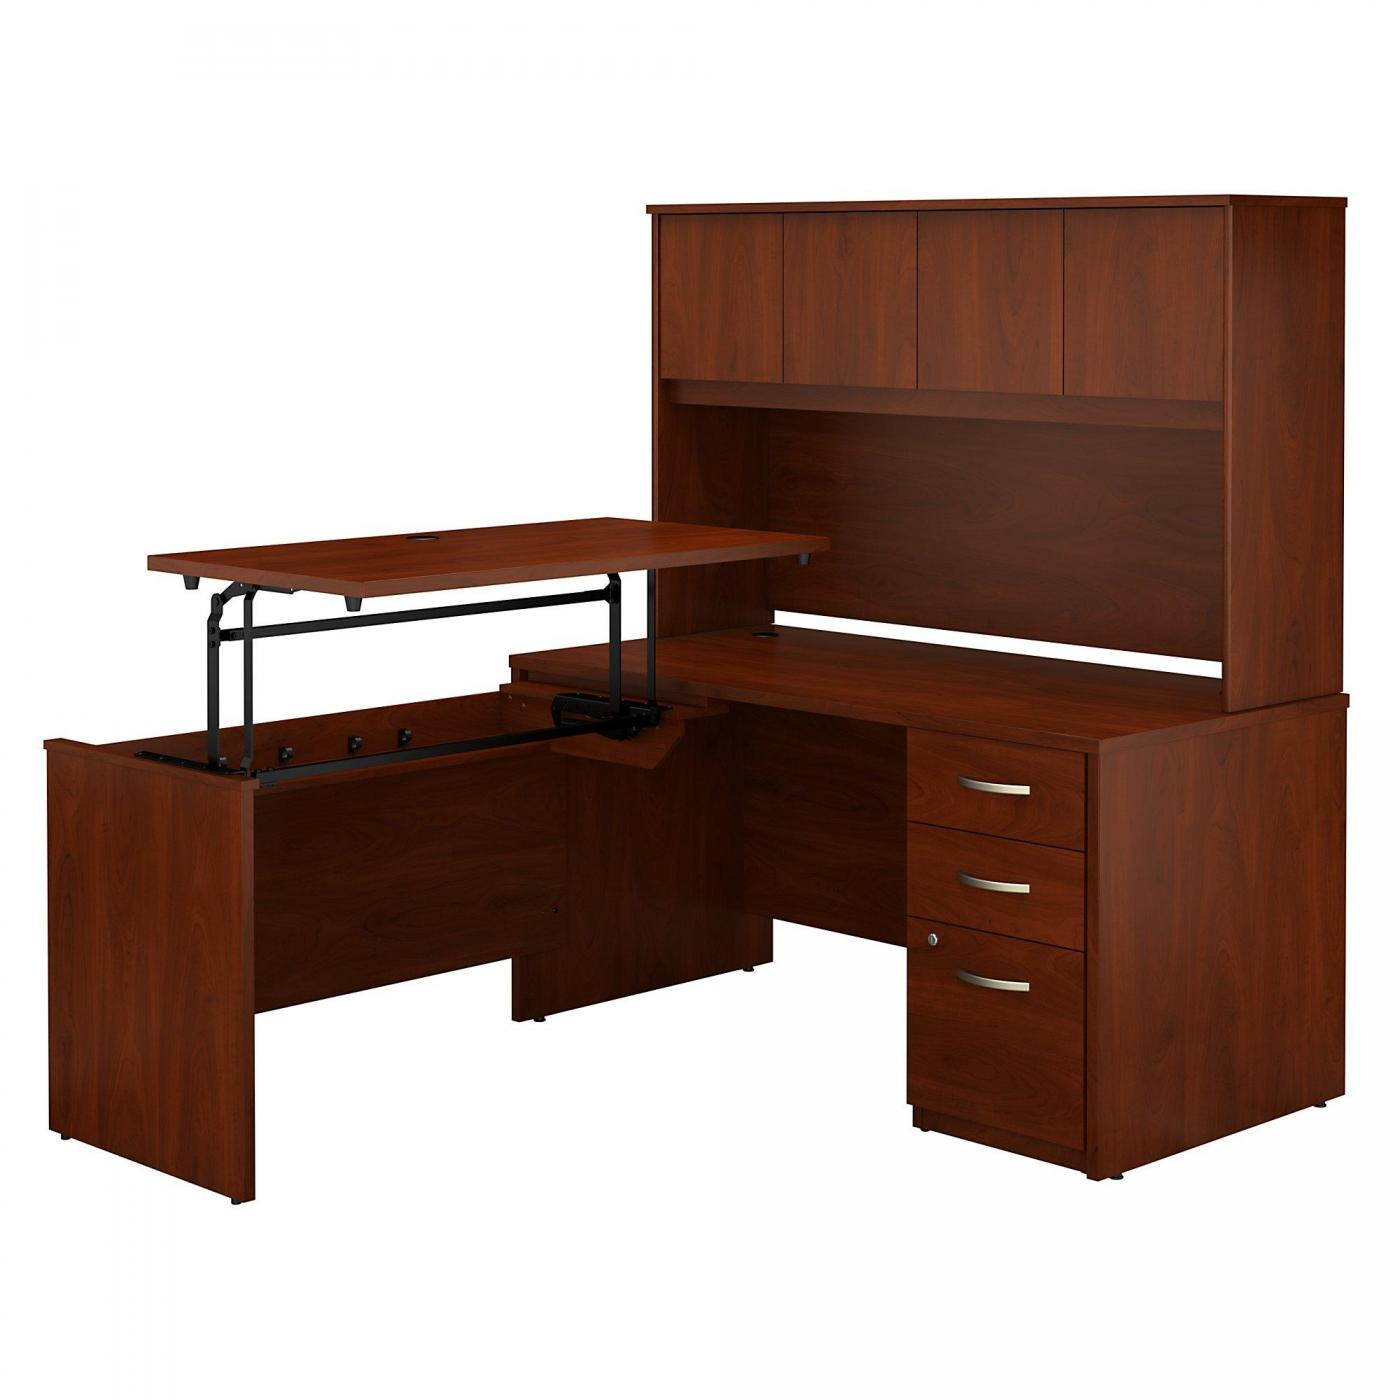 <font color=#c60><b>BUSH BUSINESS FURNITURE SERIES C ELITE 60W X 30D 3 POSITION SIT TO STAND L SHAPED DESK WITH HUTCH AND 3 DRAWER FILE CABINET. FREE SHIPPING. VIDEO:</font></b>